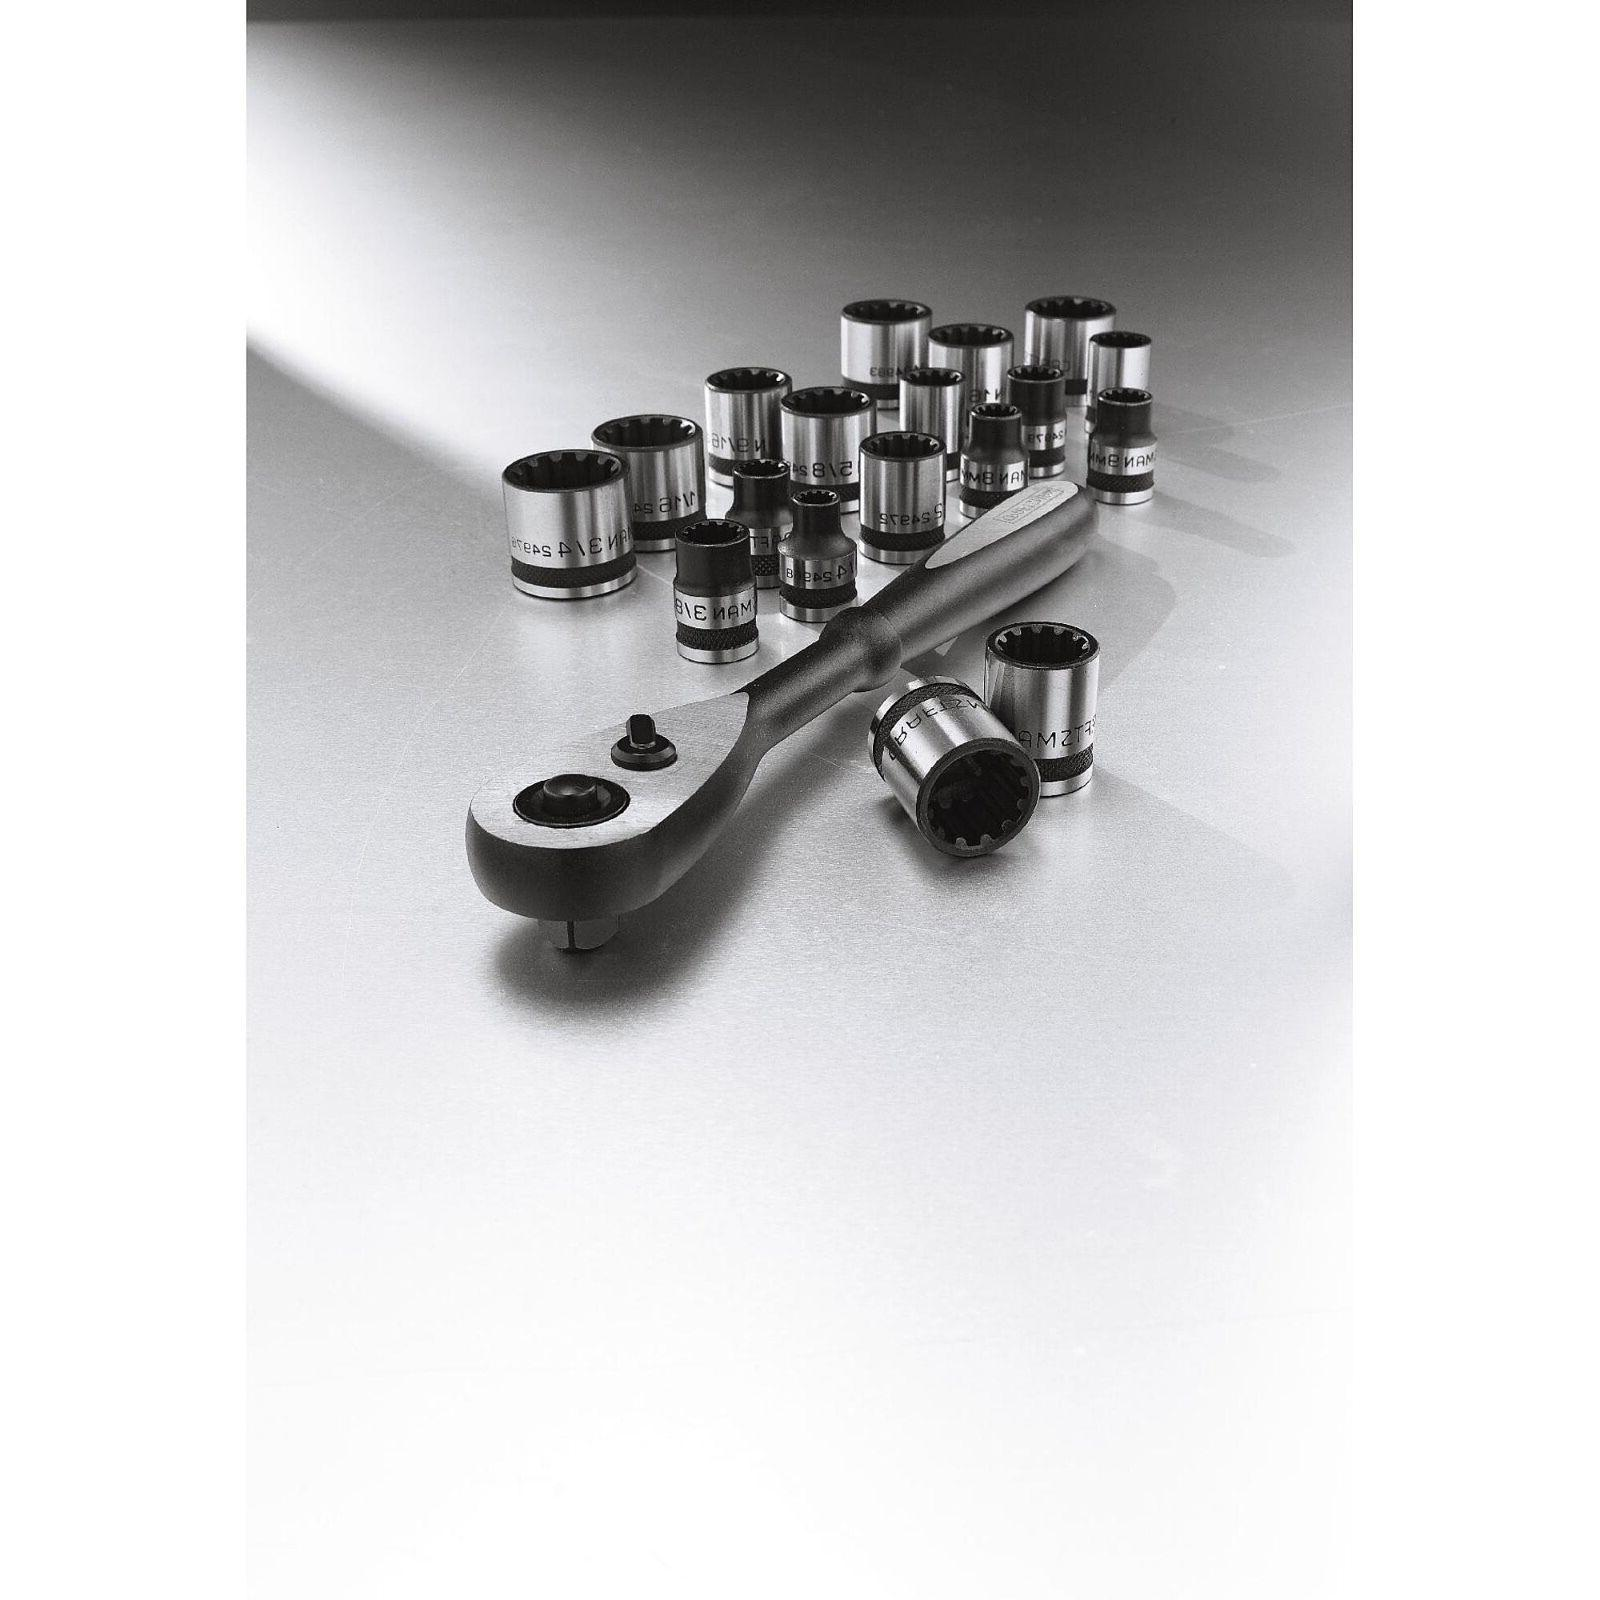 Craftsman 19-piece Inch and Socket Wrench